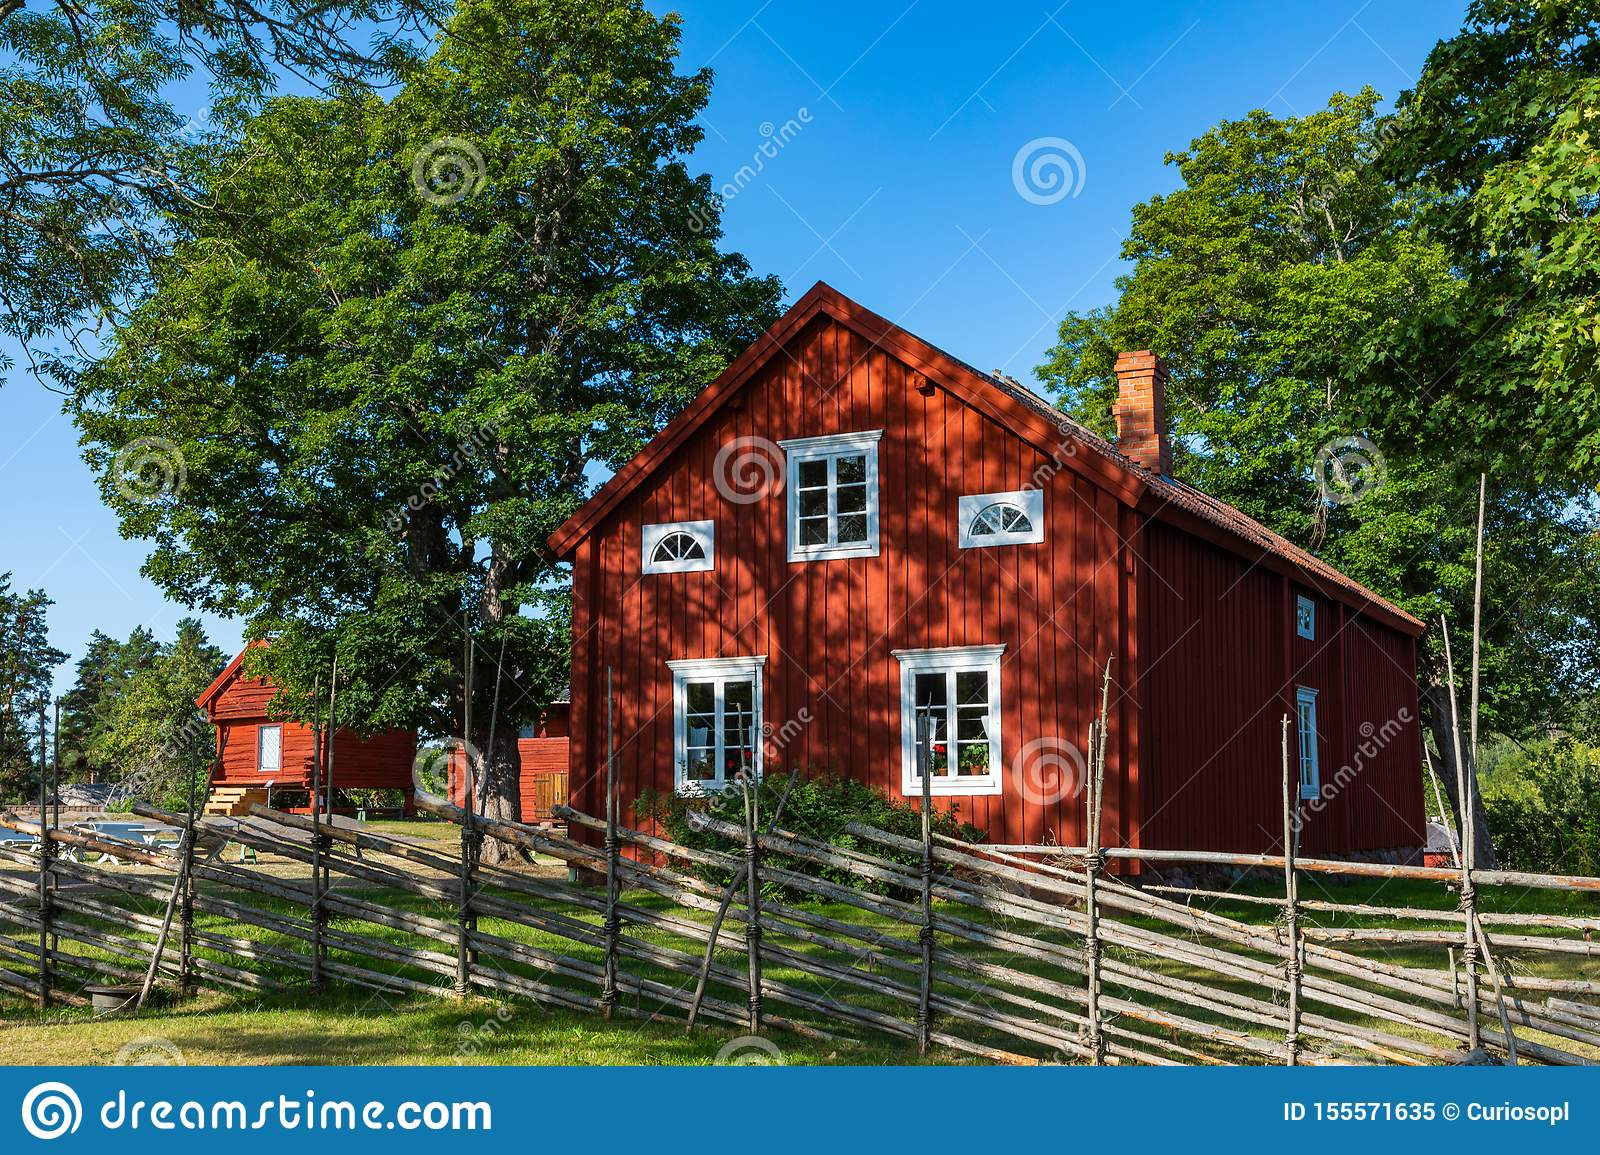 Jan Karlsgarden open air museum at Aland islands, Finland. The museum was founded in 1930s. Ethnographic park